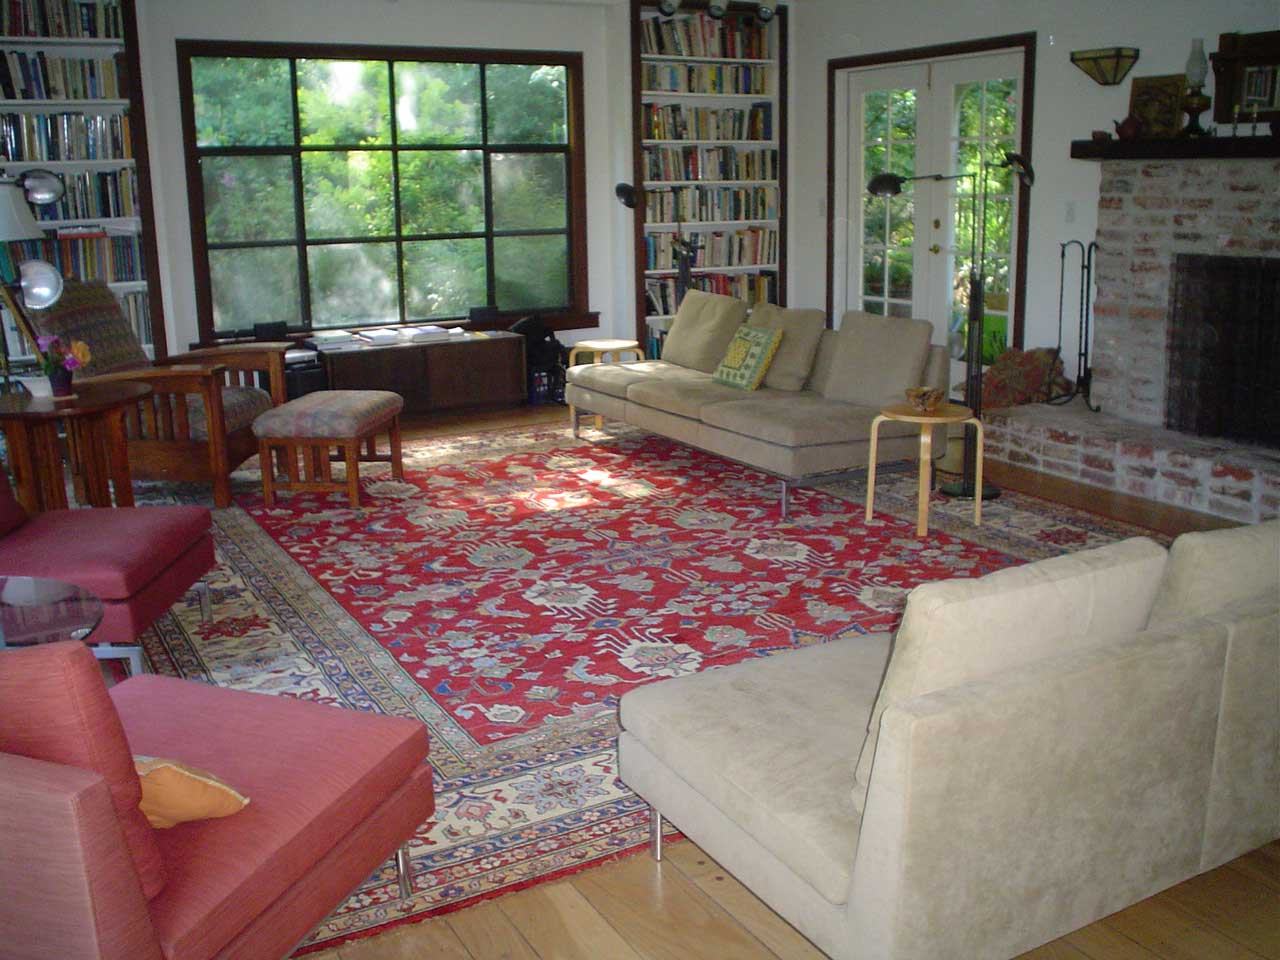 Tribal Kazak carpet with mid-Century furniture. 12 x 14 Kazak carpet, woven in Afghanistan.